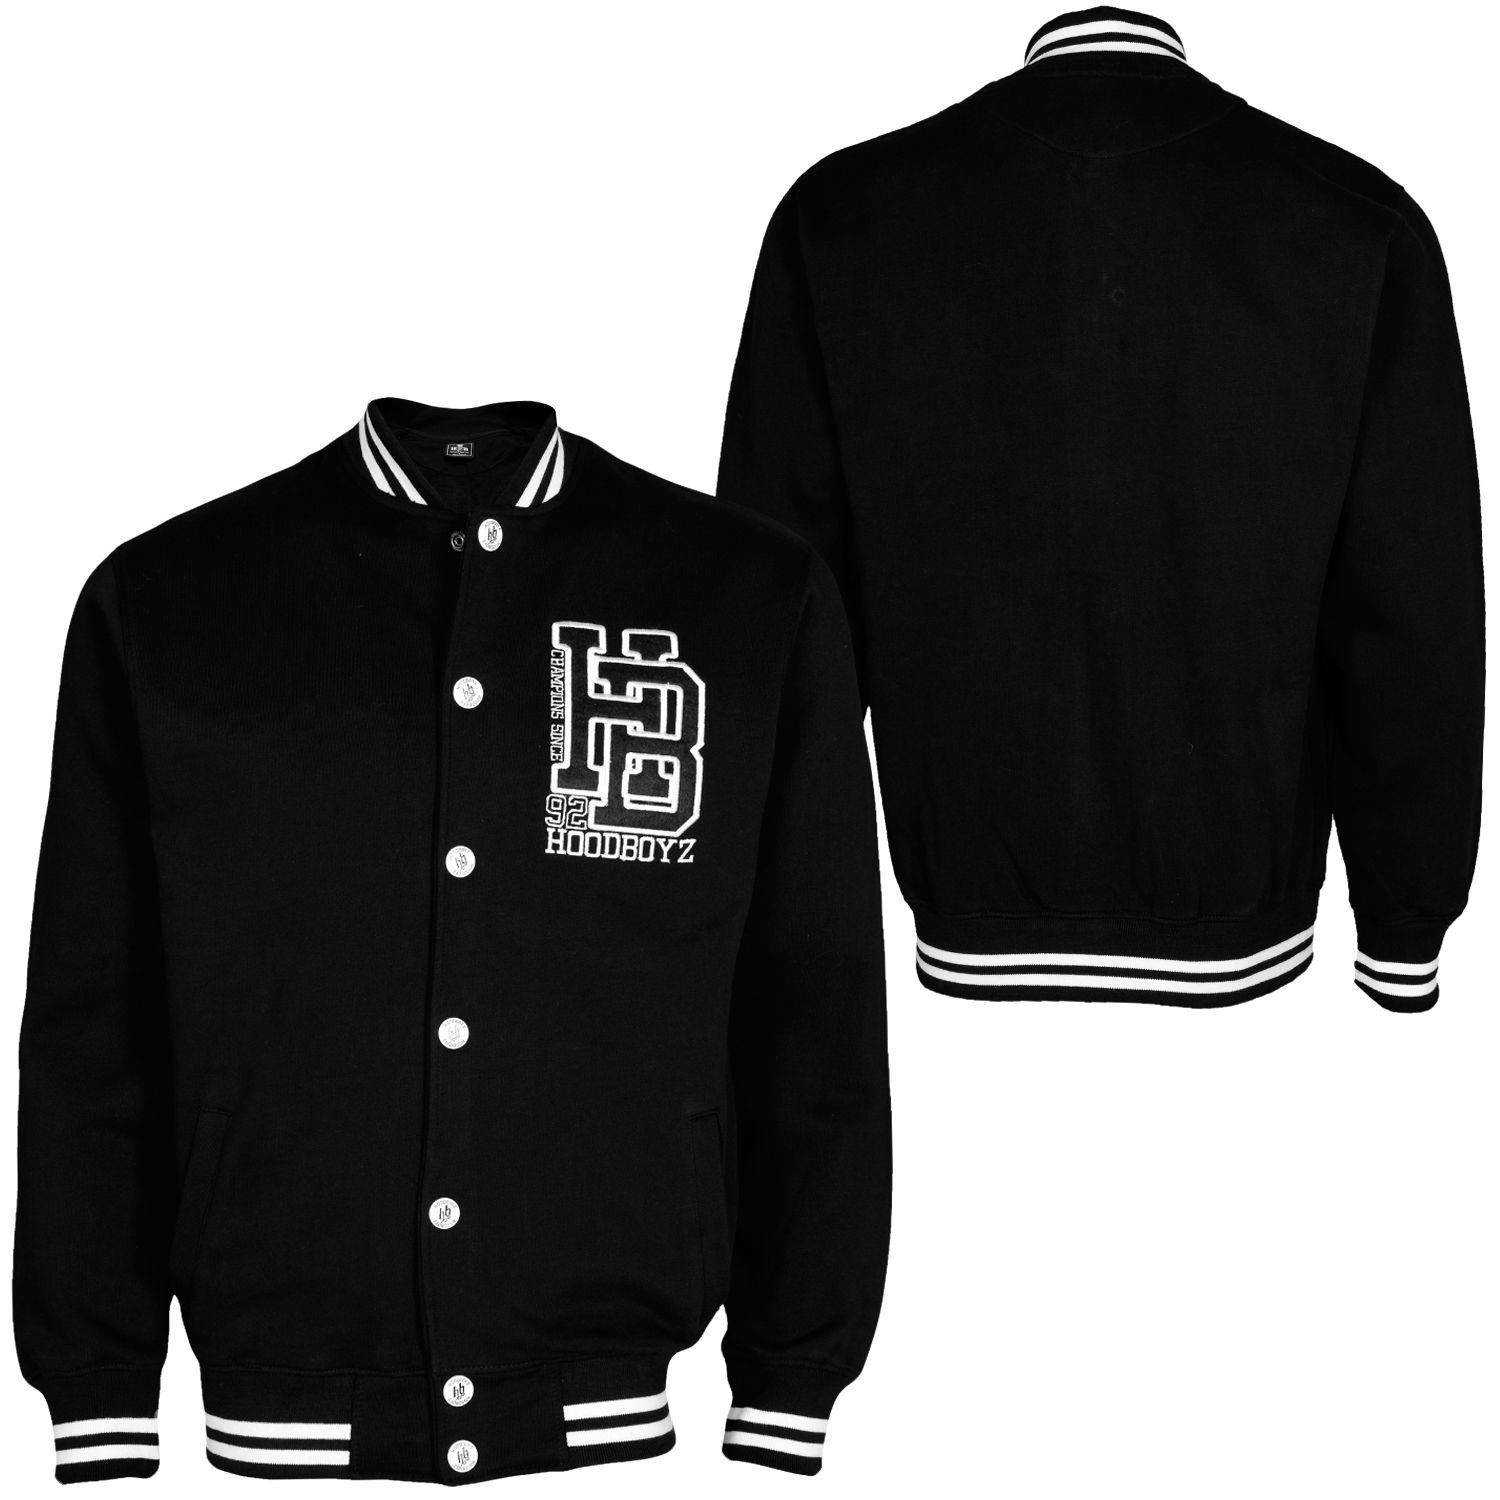 Look fashionable and stylish with college jackets | College